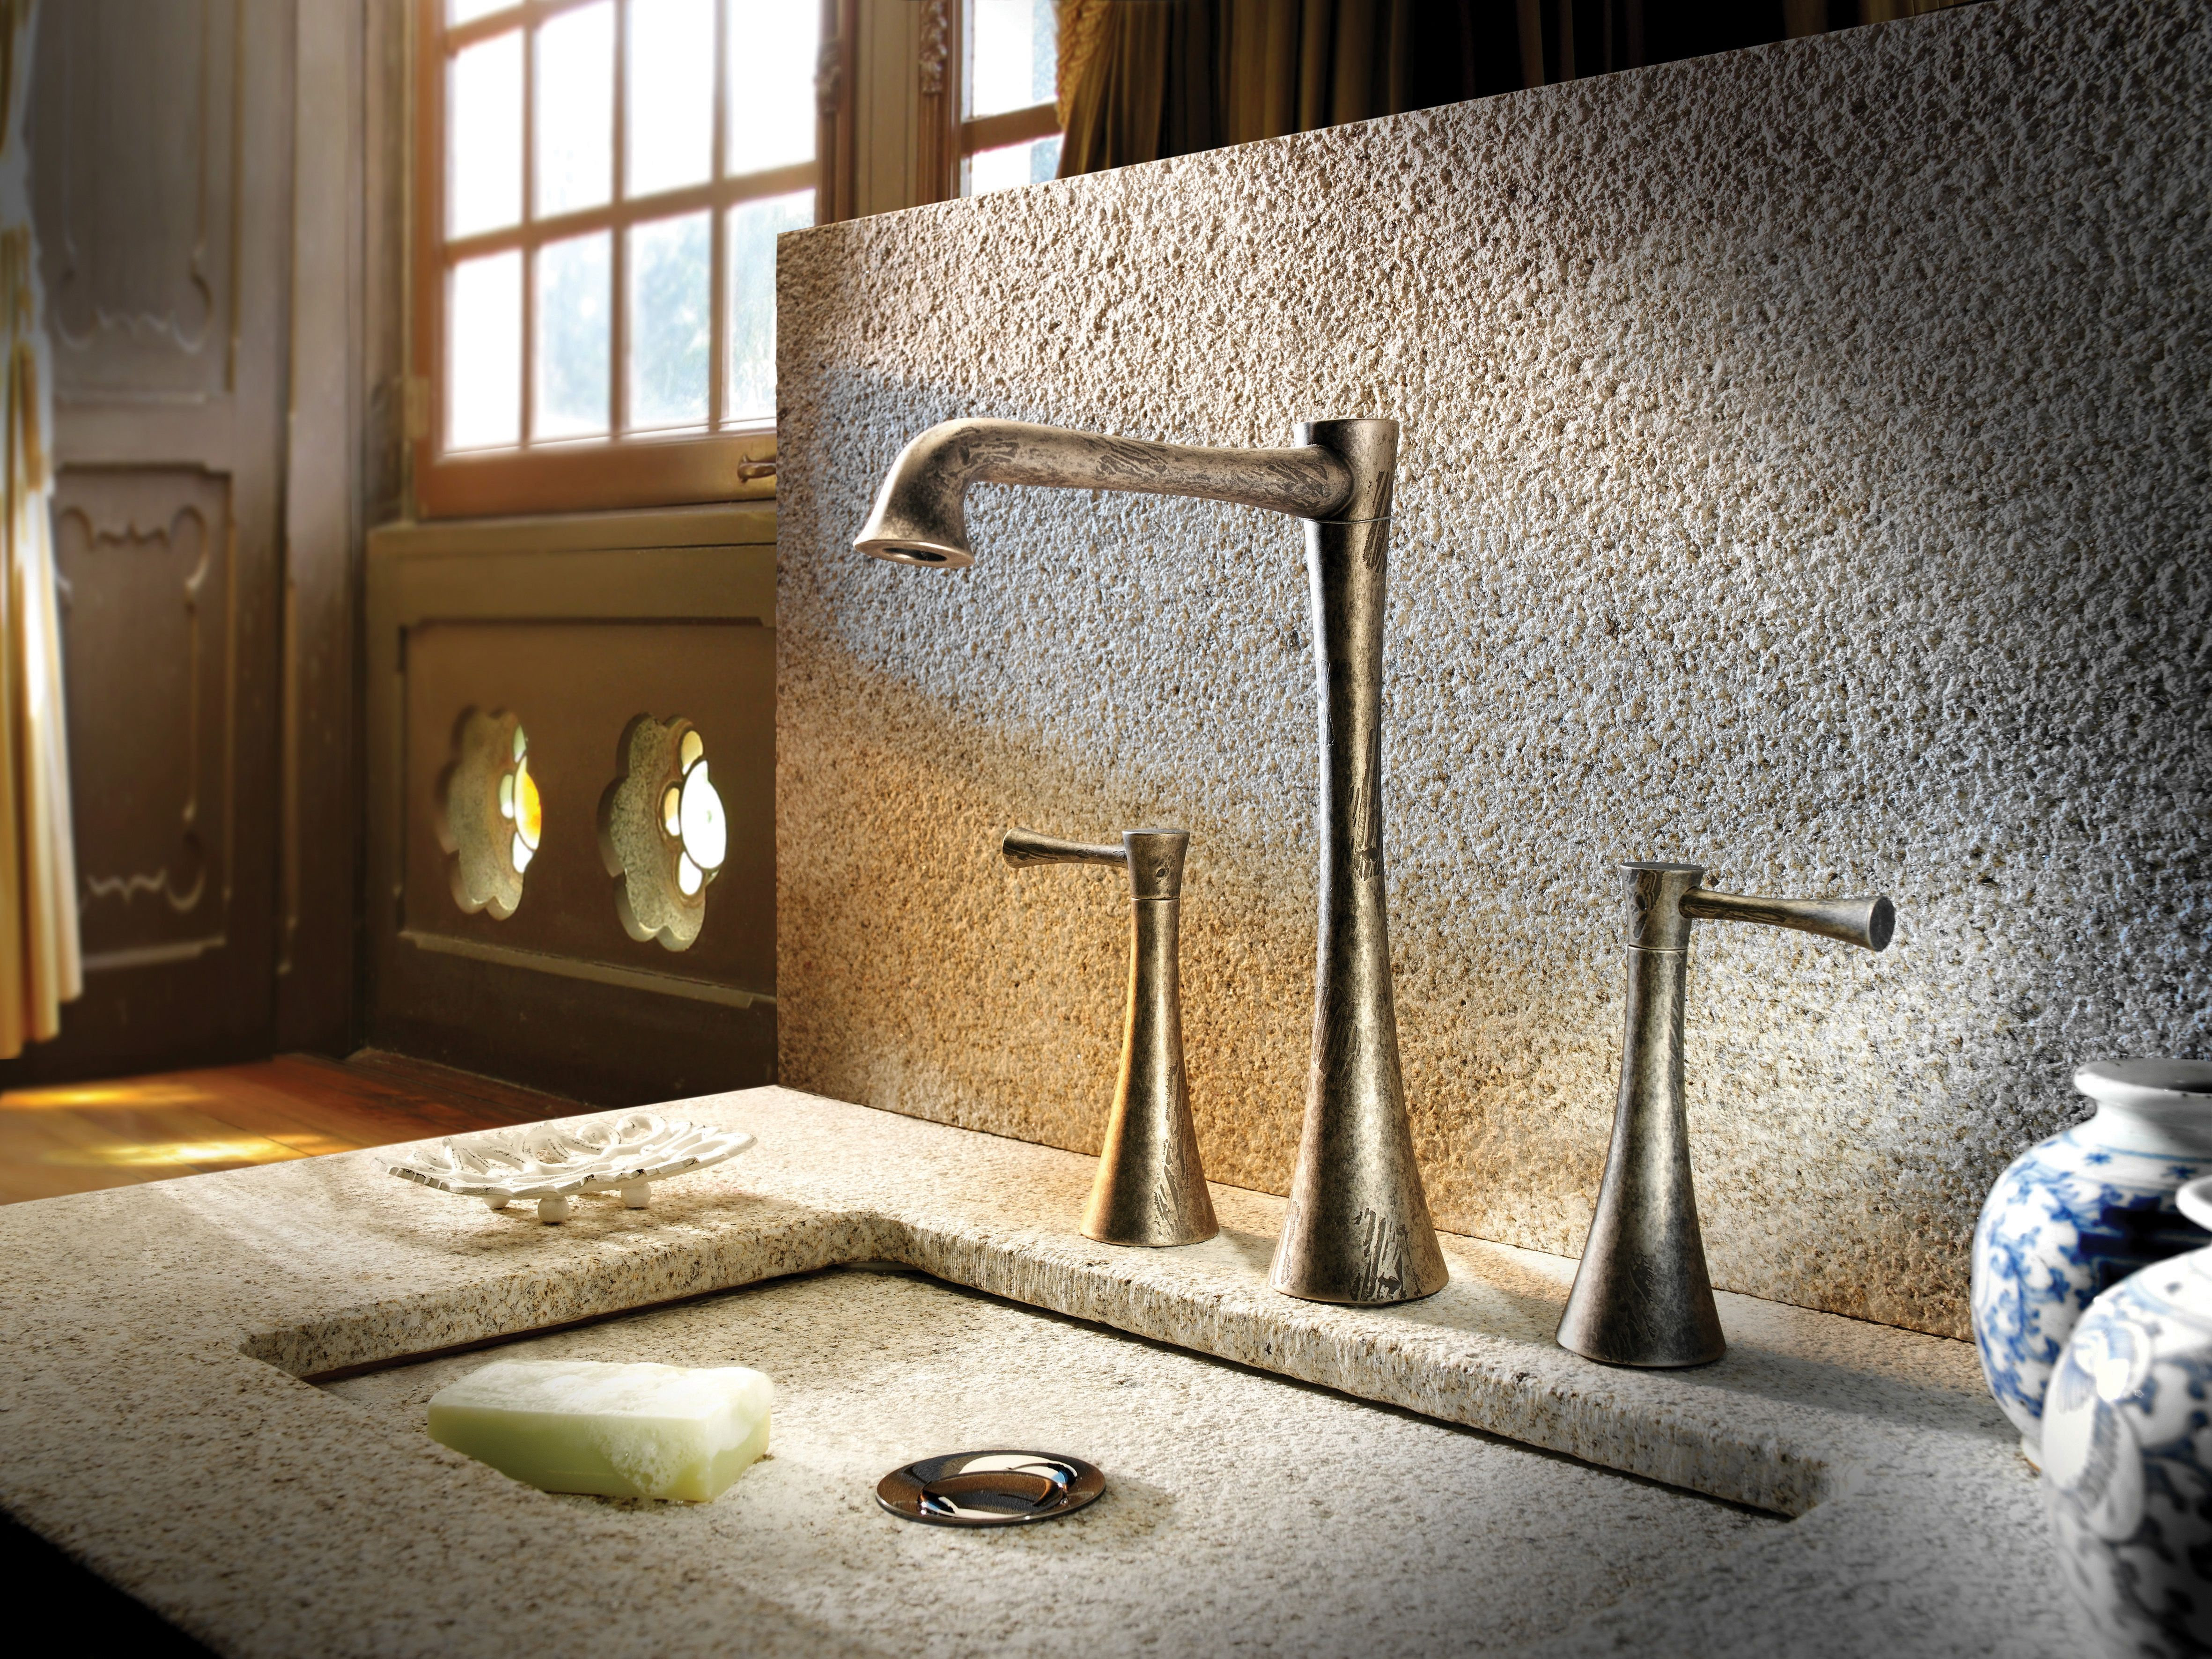 CIFIAL L Spout faucet | Bath Solutions | Pinterest